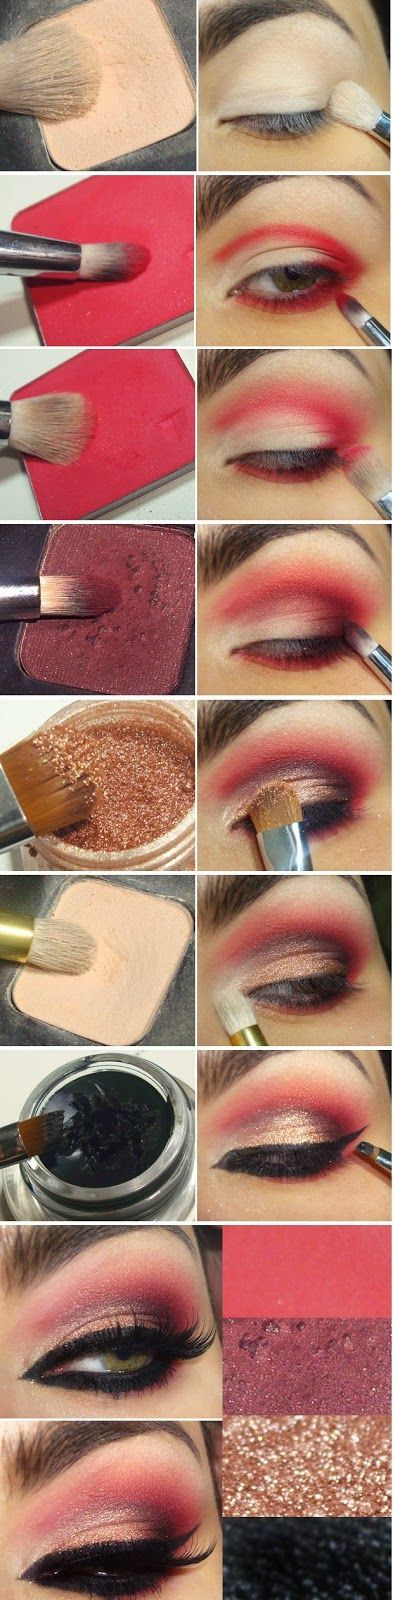 WILL TRY ! Love it! (Of course one eye will look better than the other! As always lol) See here how to make-up appropriately http://mymakeupideas.com/the-shape-of-your-eyebrows-and-face/